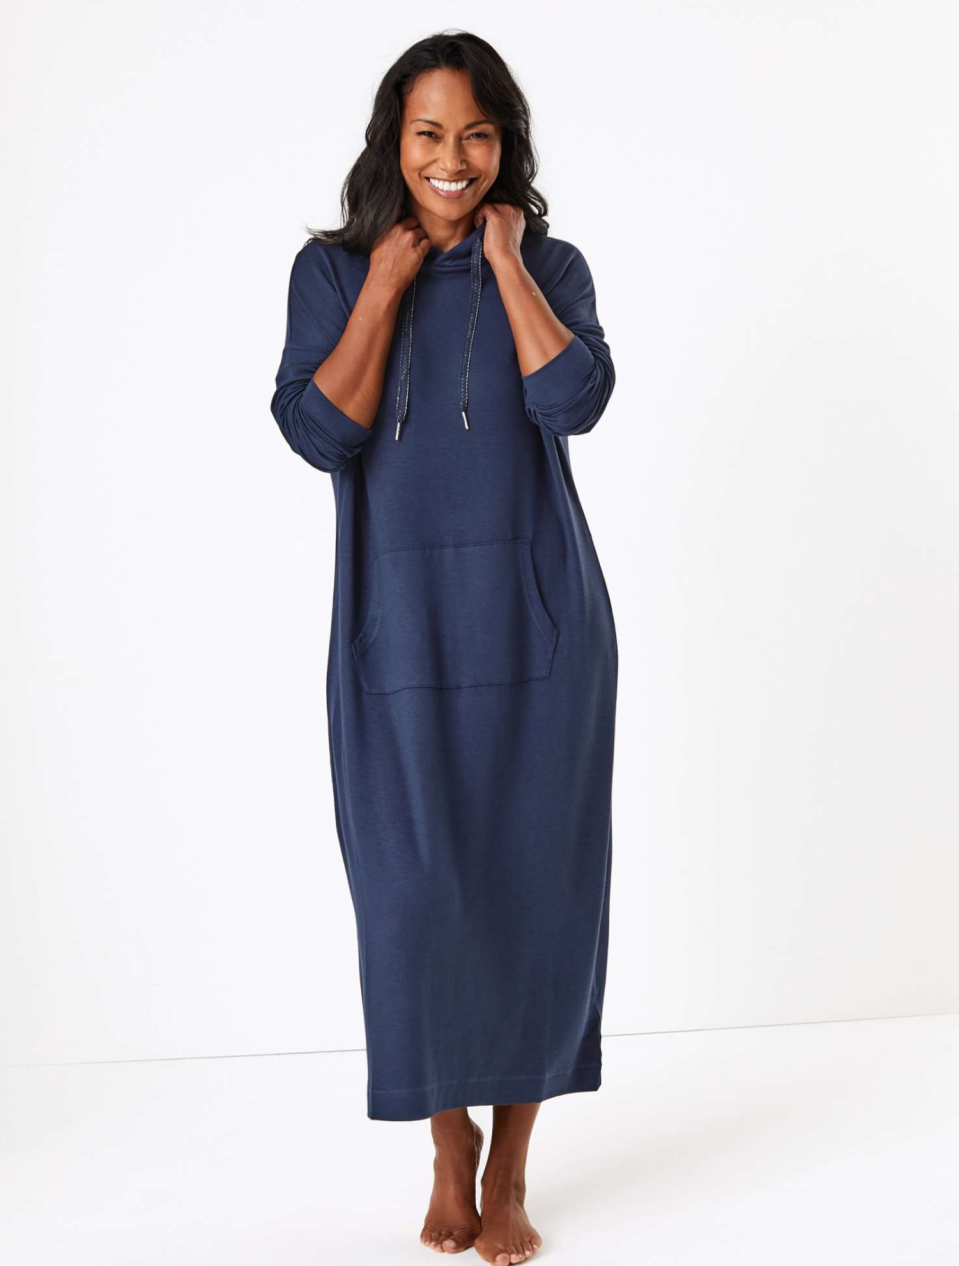 The snug loungewear dress is perfect for kicking back with a cuppa. [Photo: M&S]